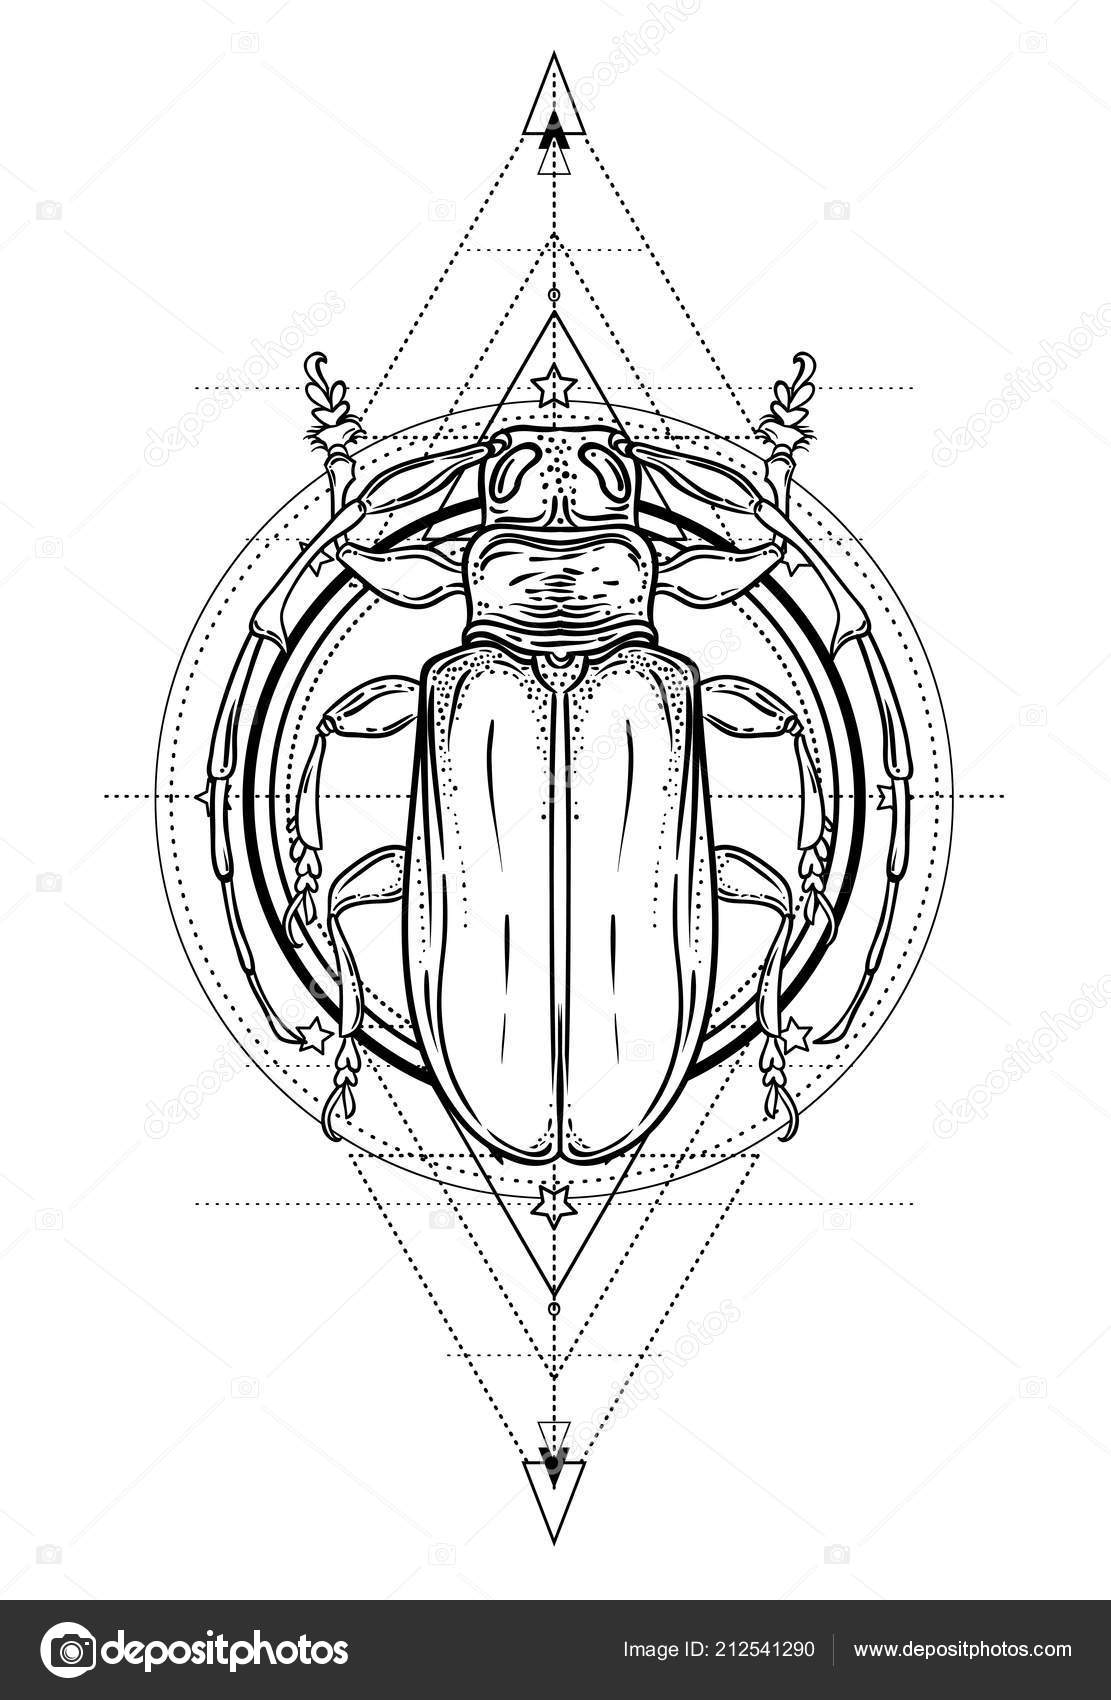 840d737a3 Tattoo sketch. Mystical symbols and insects. Alchemy, religion, occultism,  spirituality, coloring book. Hand-drawn vintage.– stock illustration